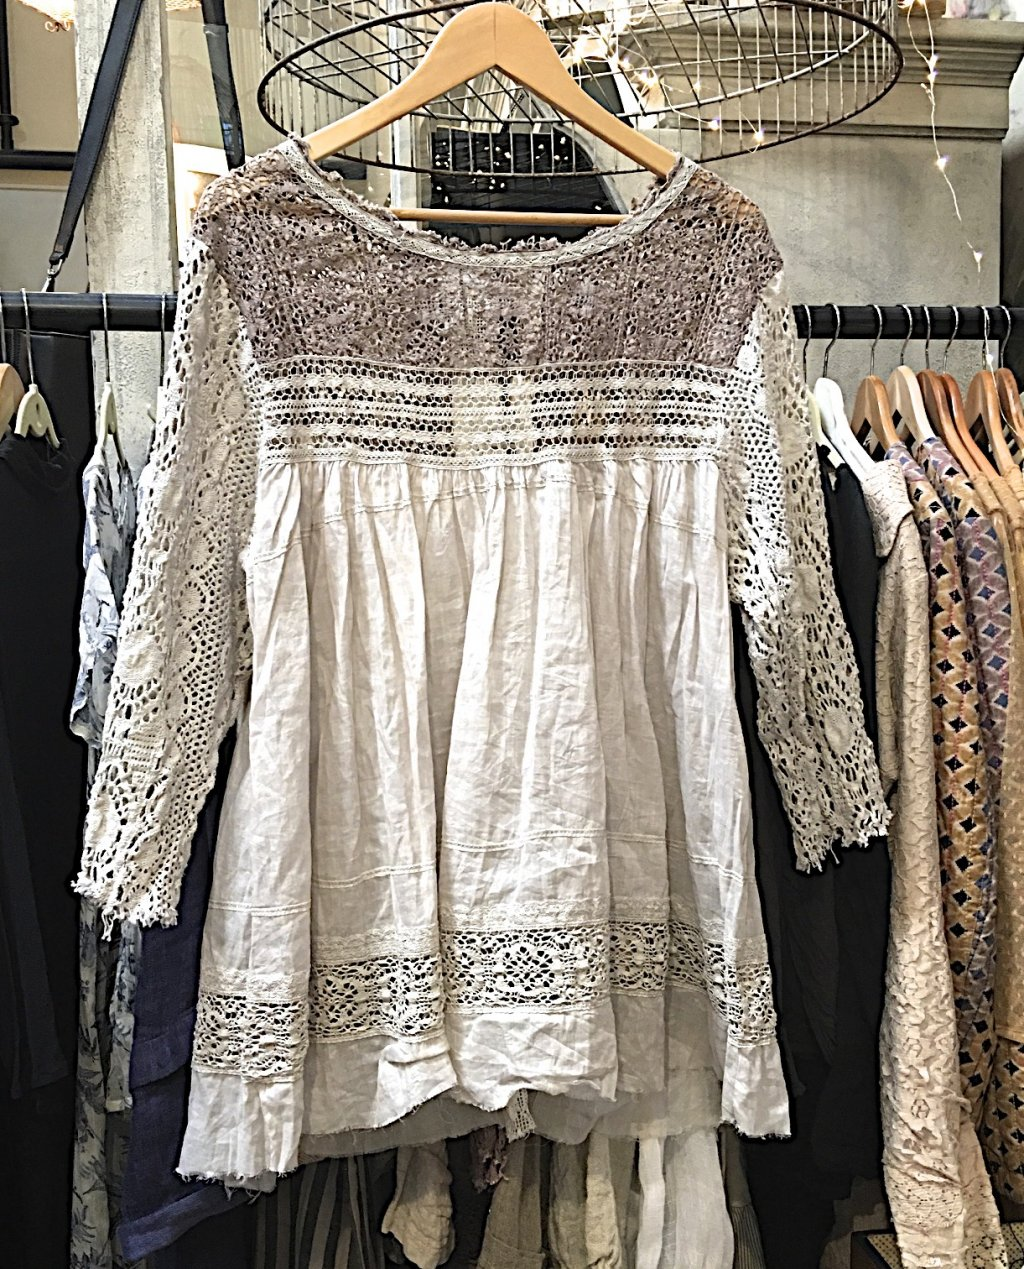 Magnolia Pearl | Linen Ramie Top with Lace Sleeves & Bodice | Nanette - Antique White